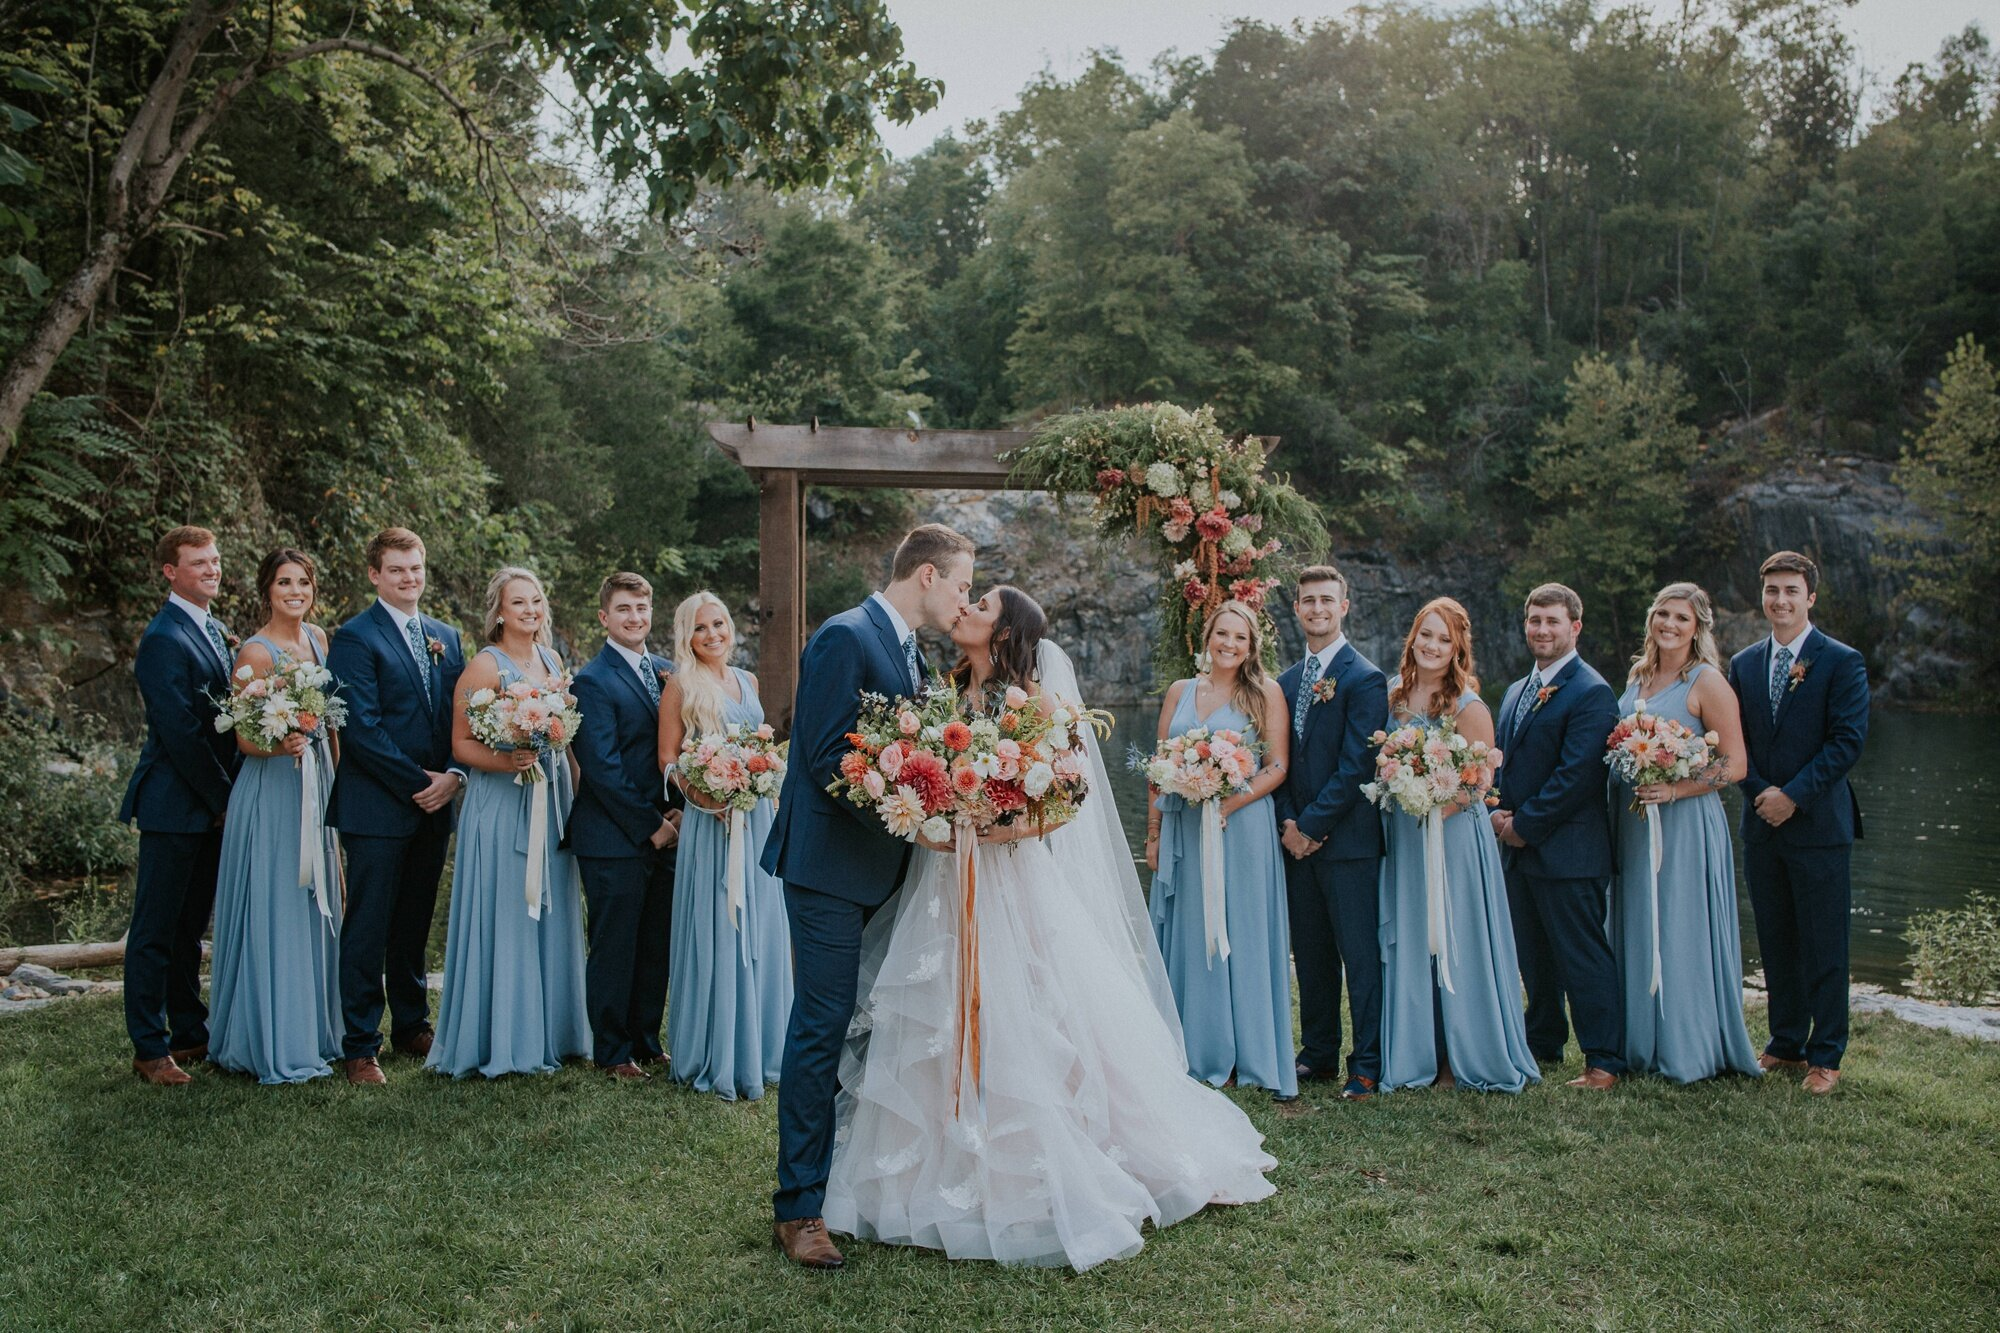 waterstone-venue-johnson-city-tennessee-rustic-adventurous-katy-sergent-asheville-knoxville-wedding-photography_0021.jpg